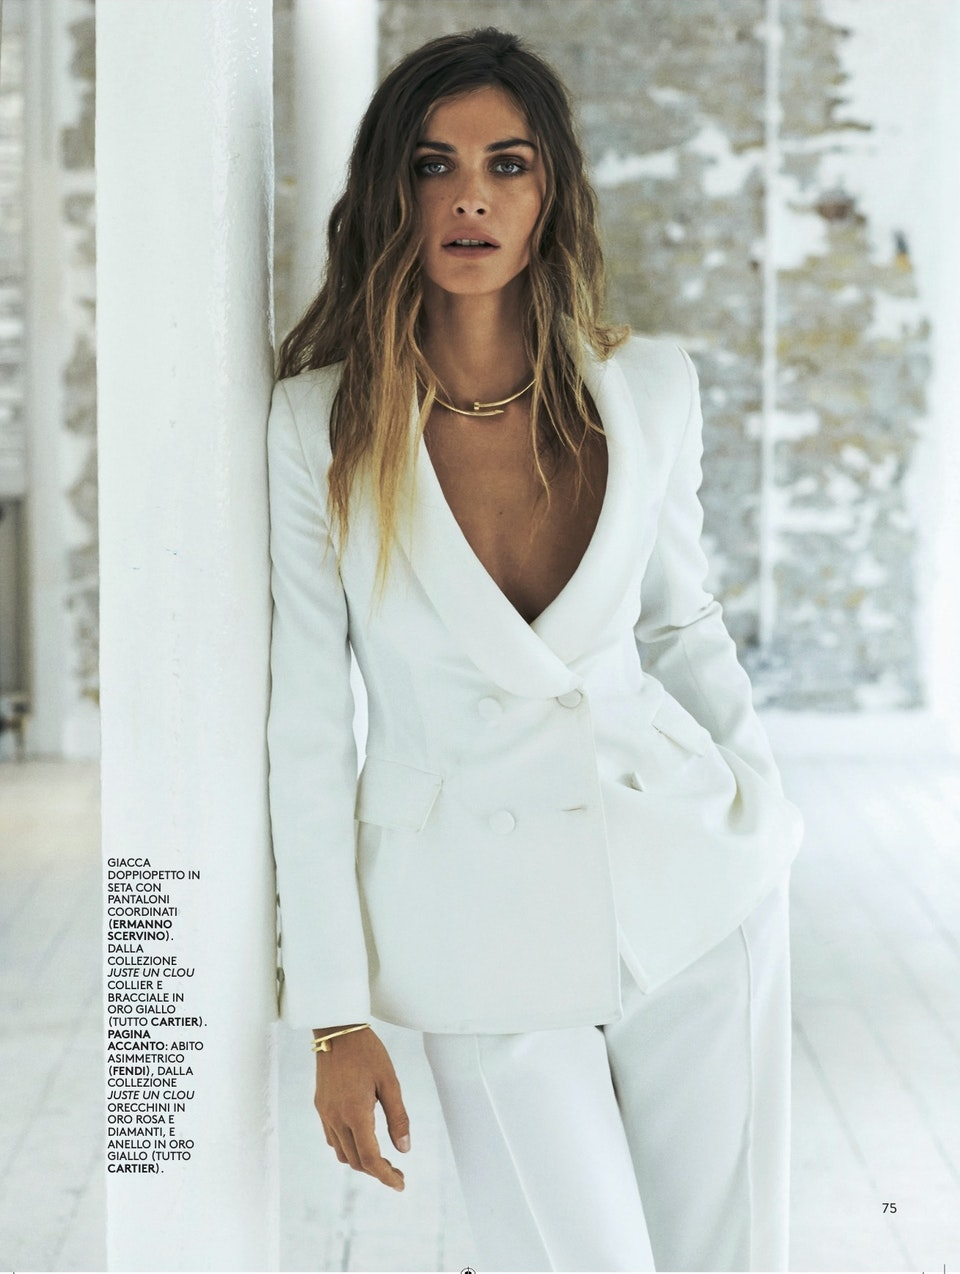 GRAZIA Italy by David Oldham feat. Elisa Sednaui - GRAZIA Italy by David Oldham